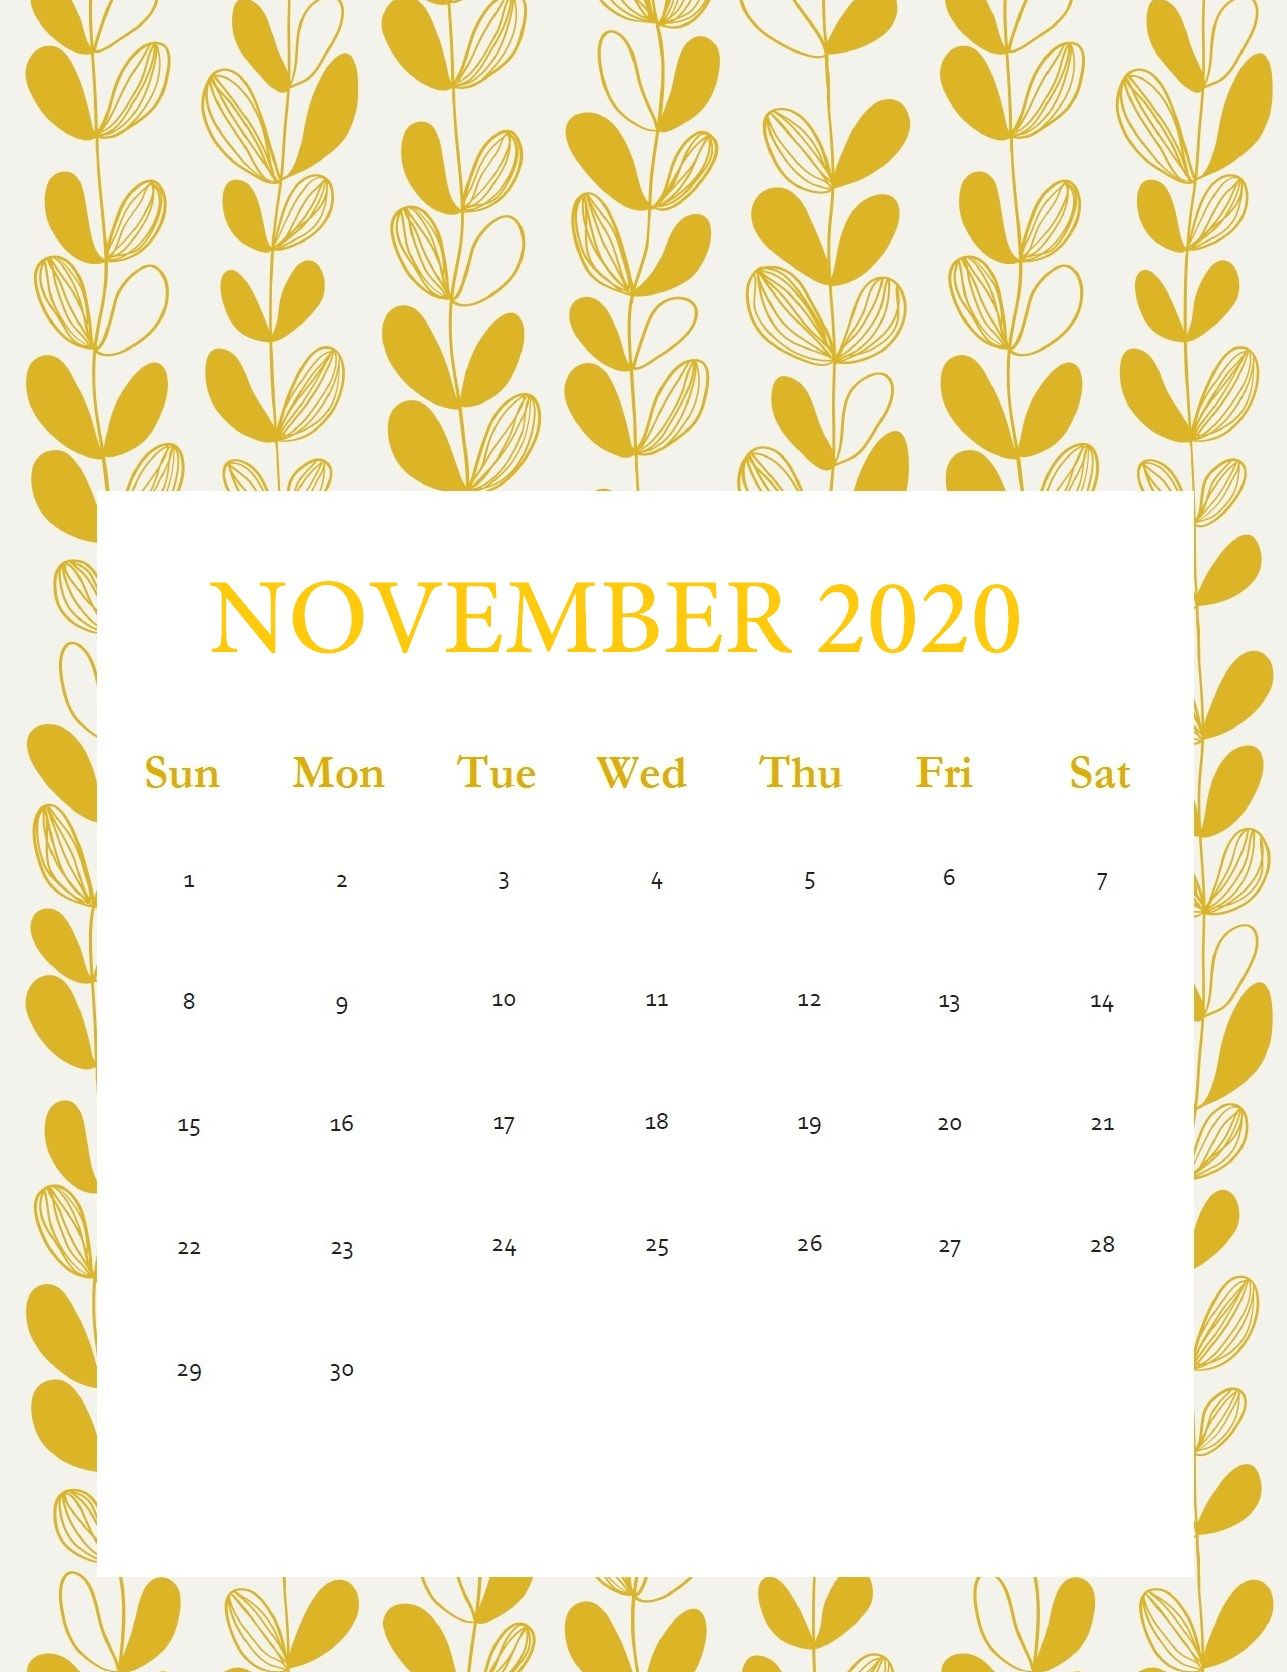 November 2020 Wall Calendar | Free Printable Calendar intended for November 2020 Clipart